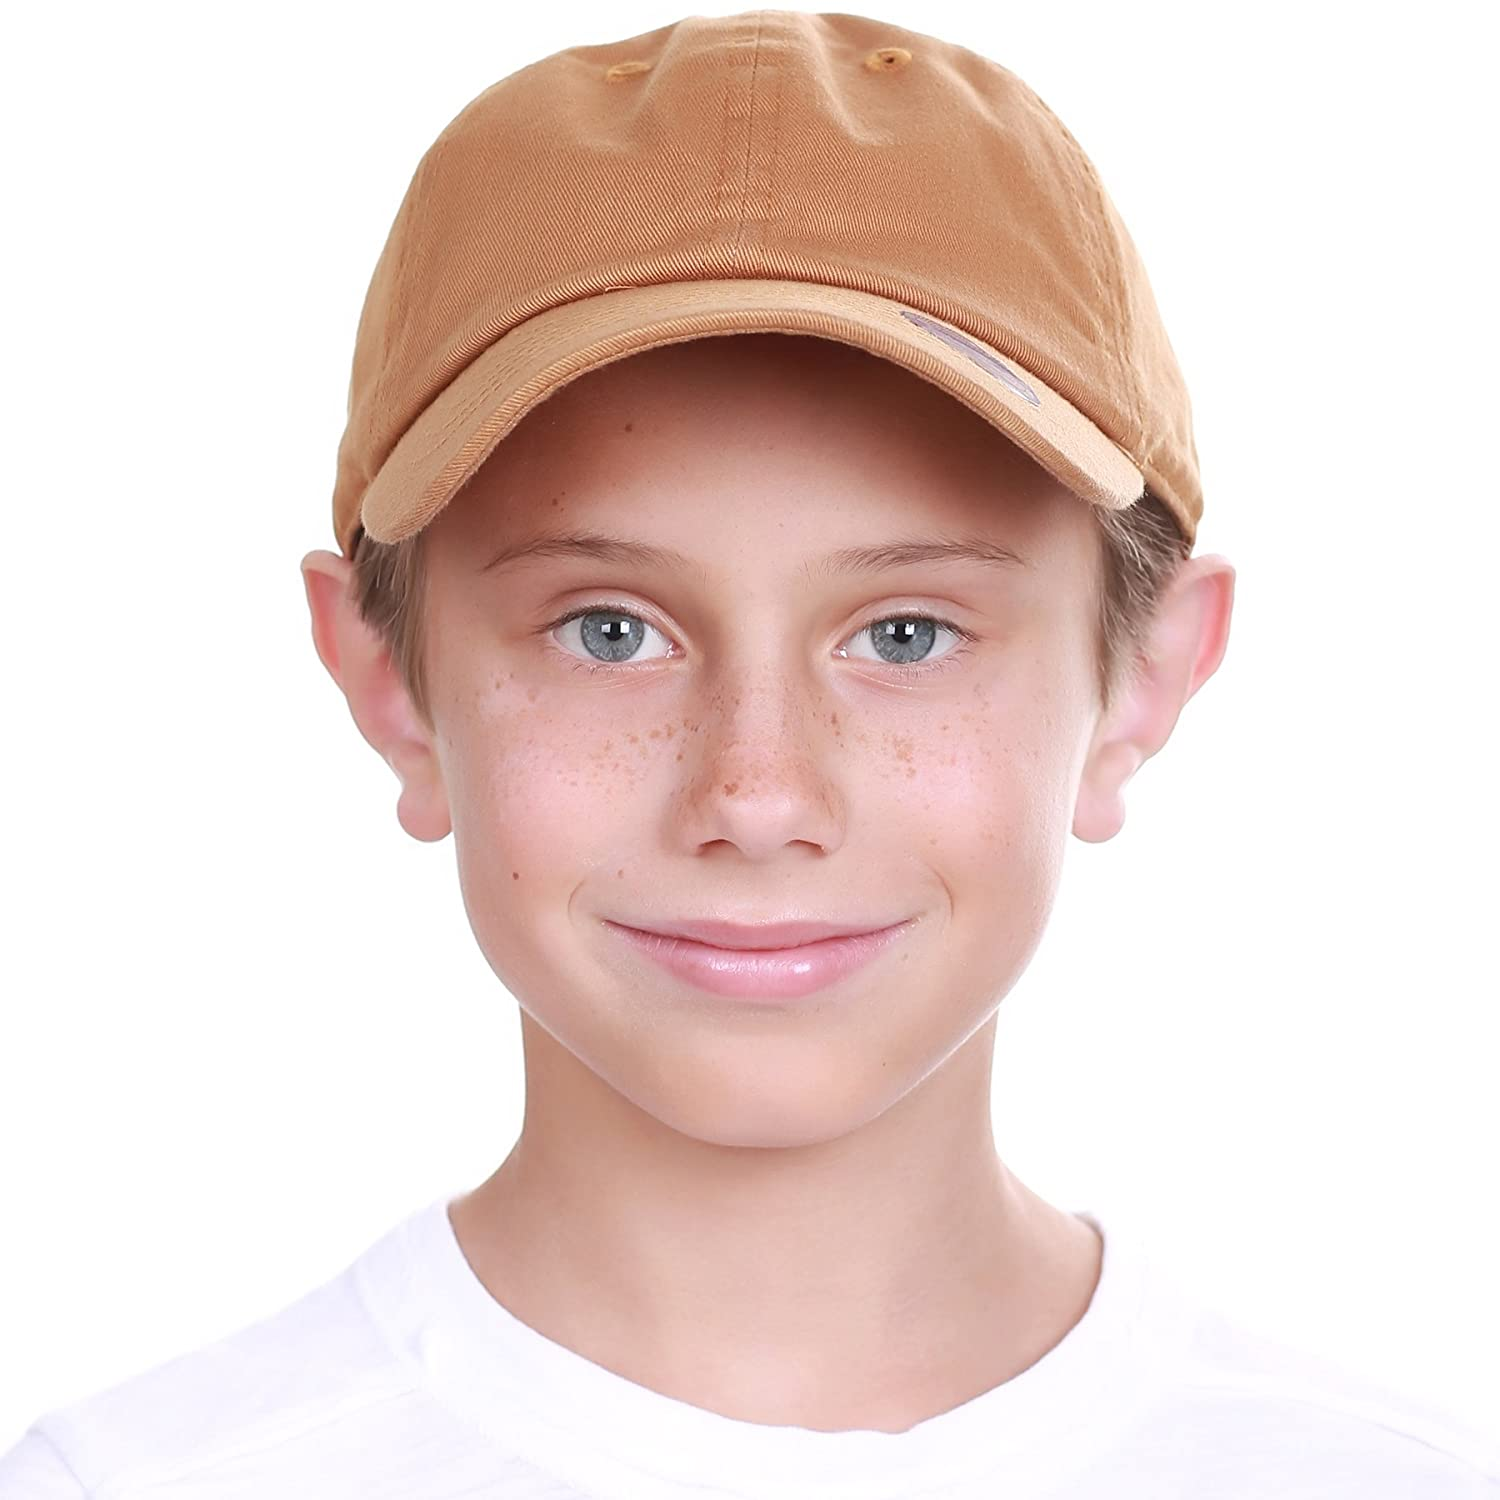 (Age 2 to 9) Kids Hat in Style Sunday Afternoon Play Cap Collection Sun Protection Outdoor Fun Boys Girls -Made 100% Soft Cotton- KBETHOS